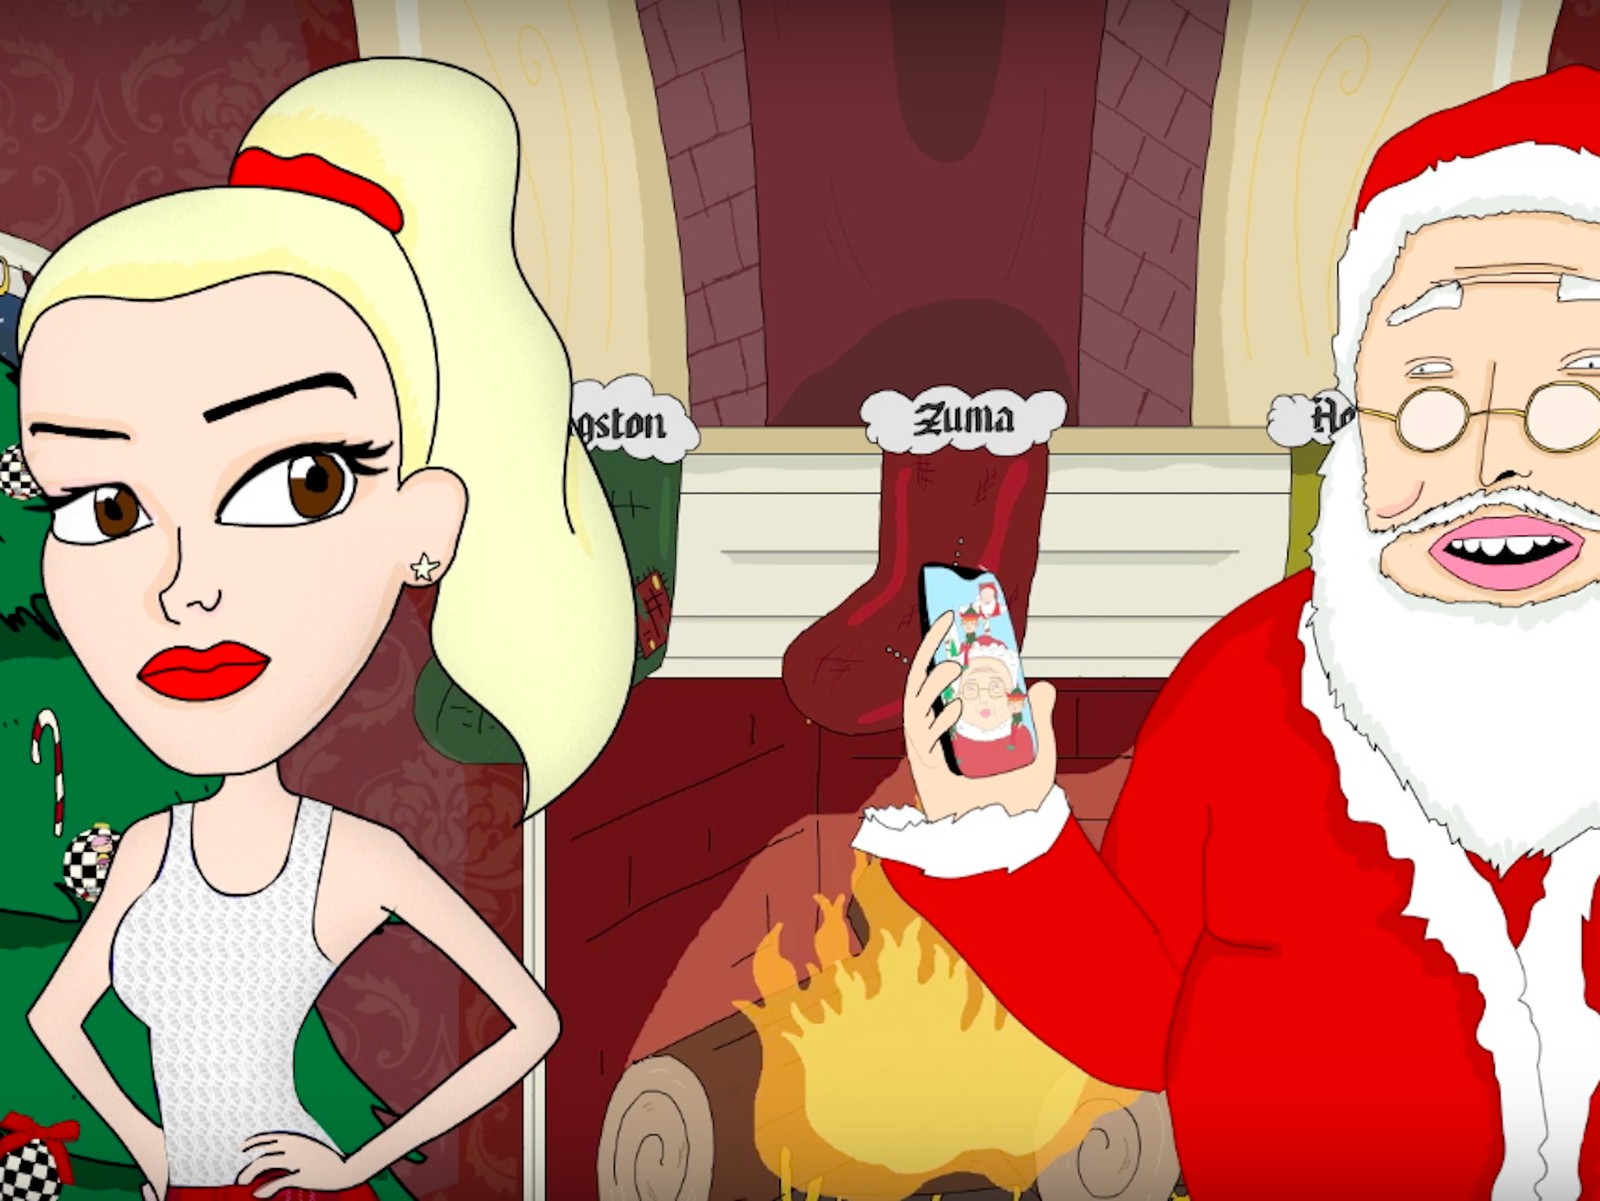 An animated Gwen Stefani and Santa Claus in front of a fireplace